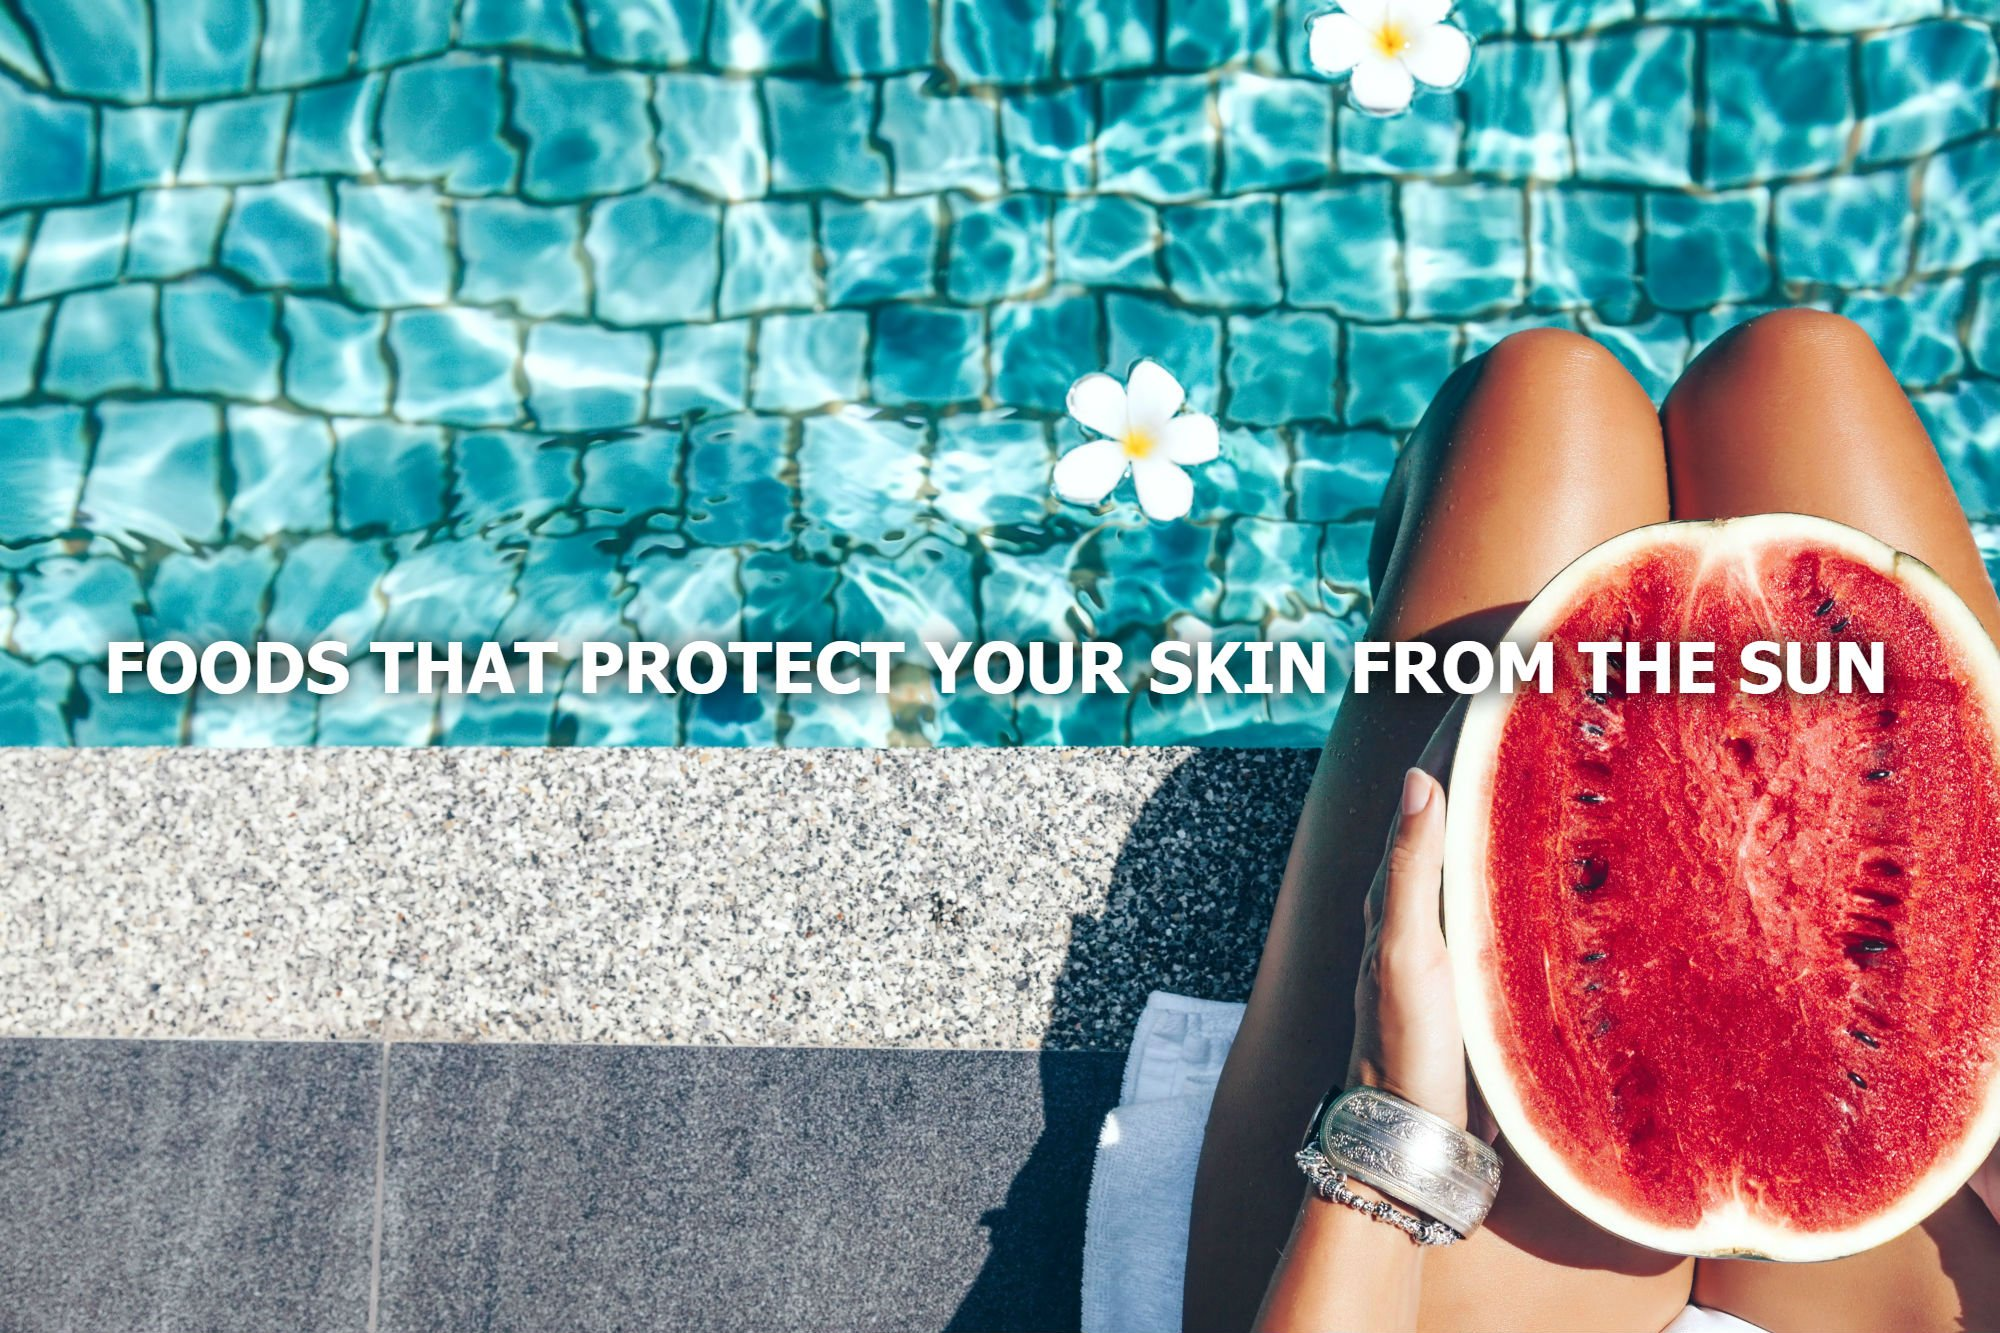 FIVE FOODS TO PROTECT YOUR SKIN FROM THE SUN